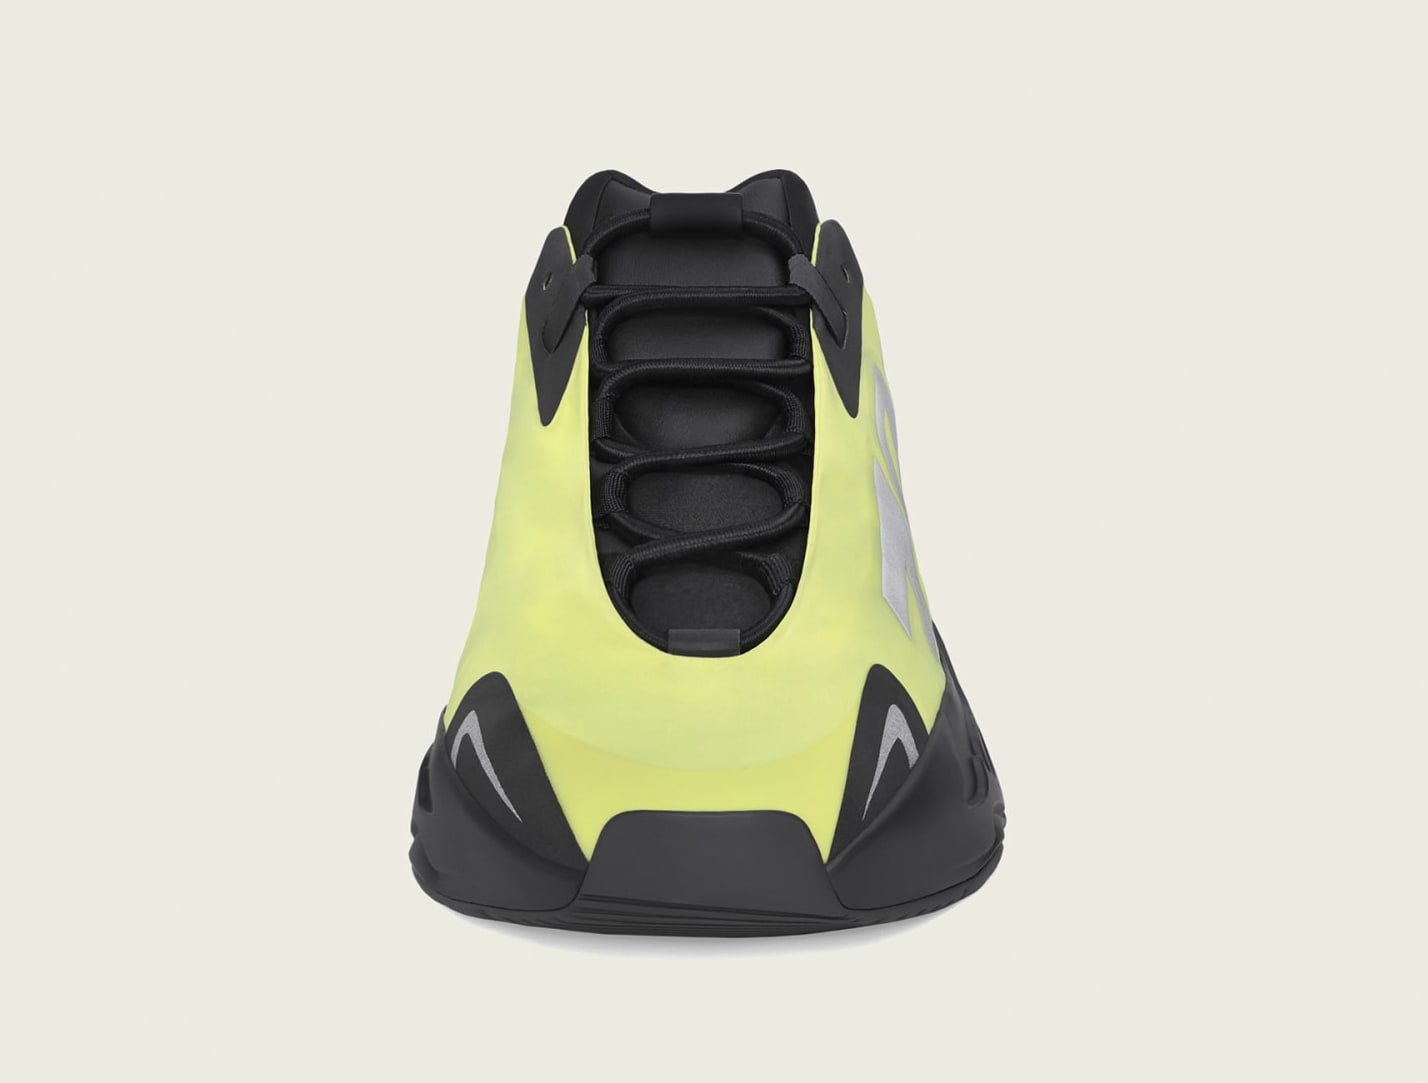 Adidas Yeezy Boost 700 MNVN 'Phosphor' FY3727 Front